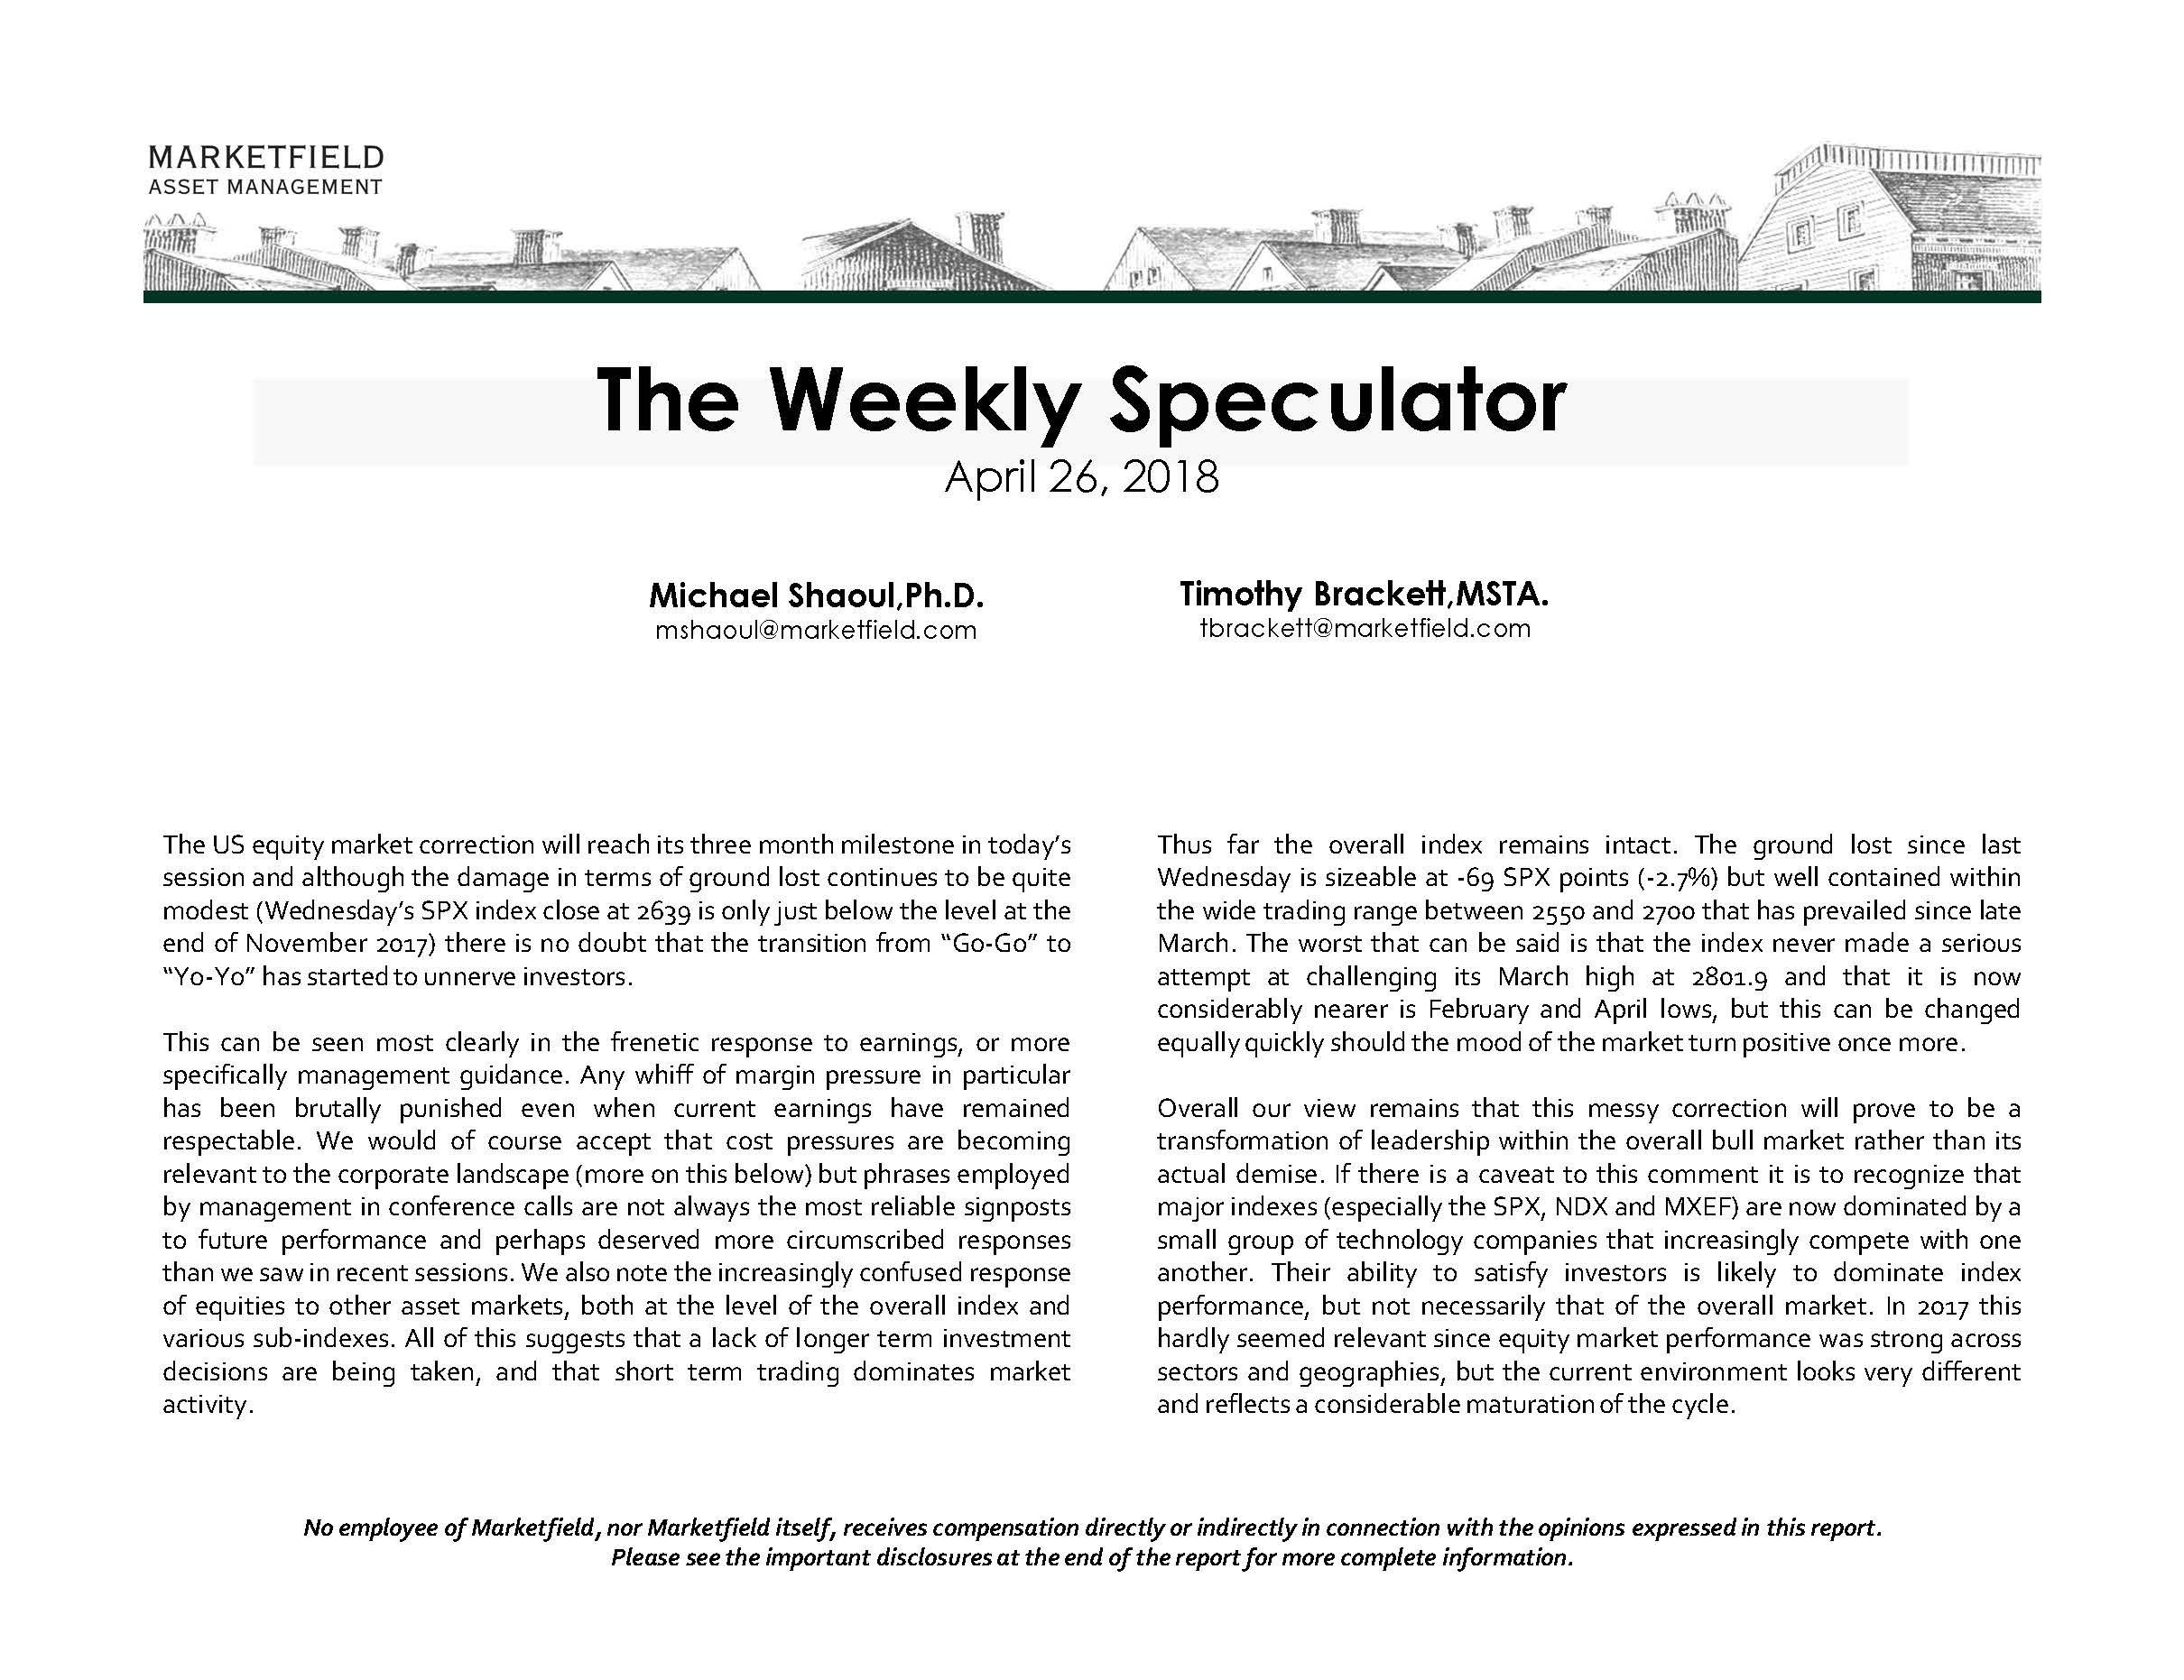 Marketfield Weekly Speculator for 04-26-18_Page_01.jpg